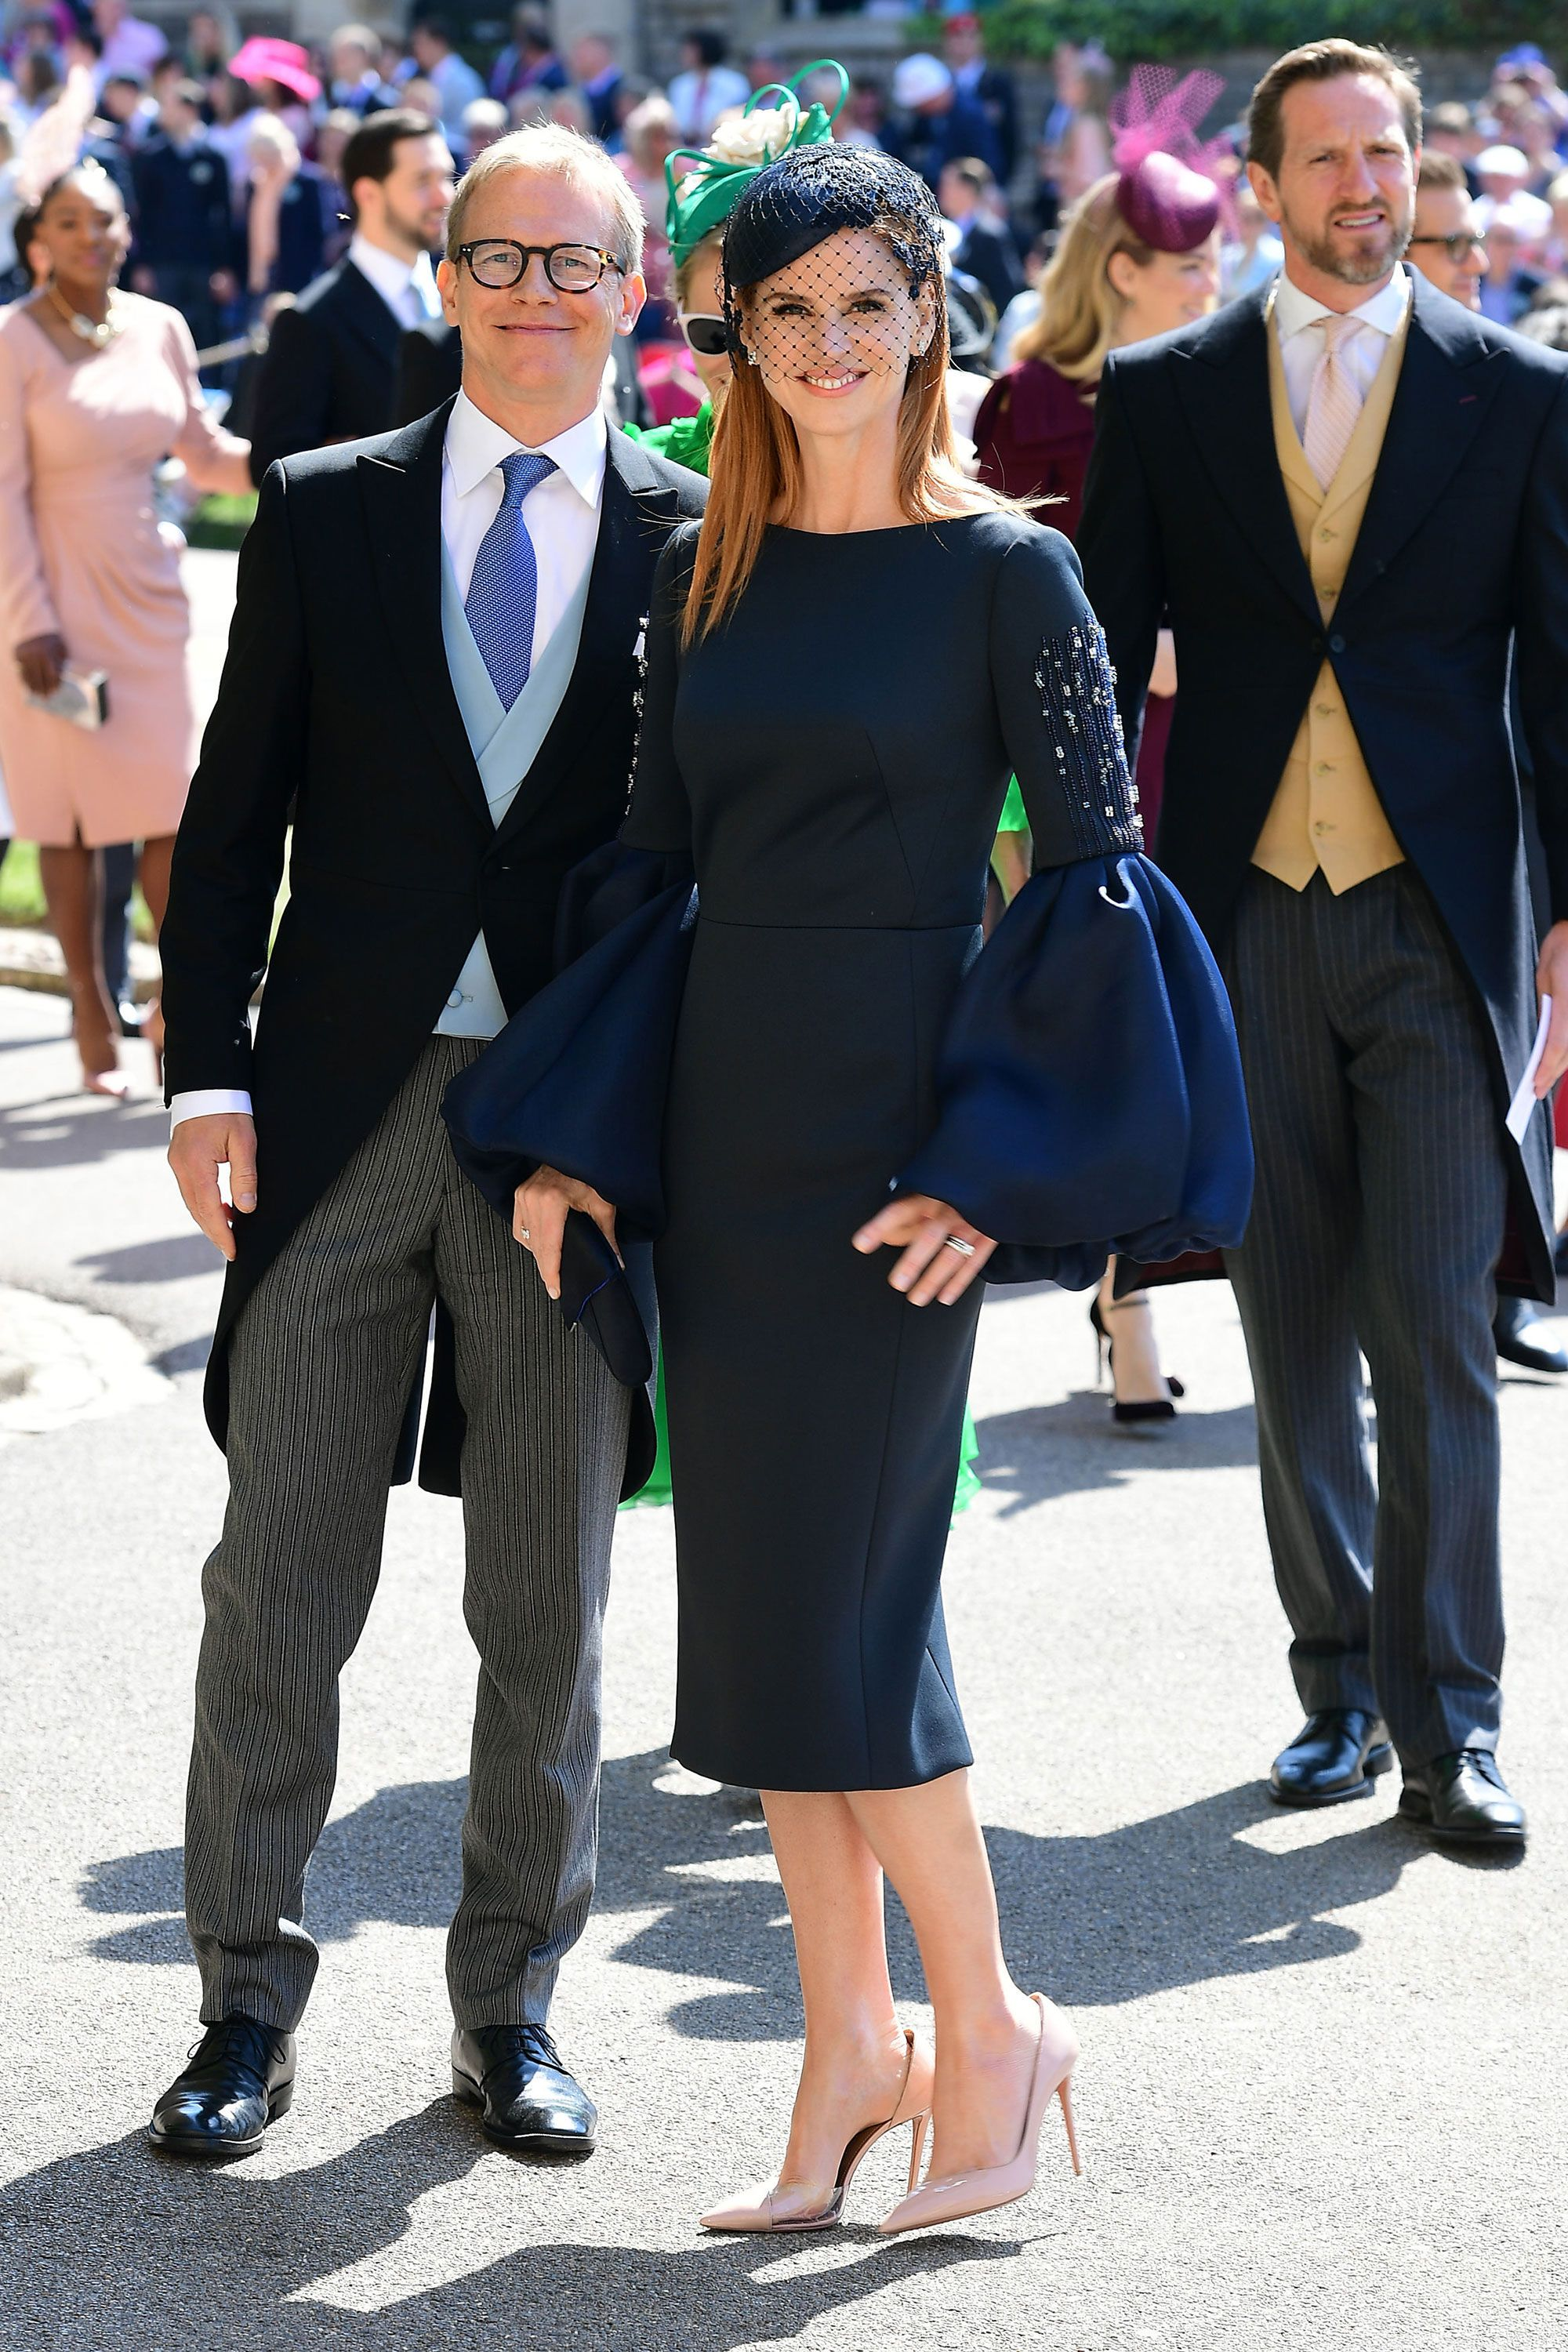 Sarah Rafferty at the royal wedding